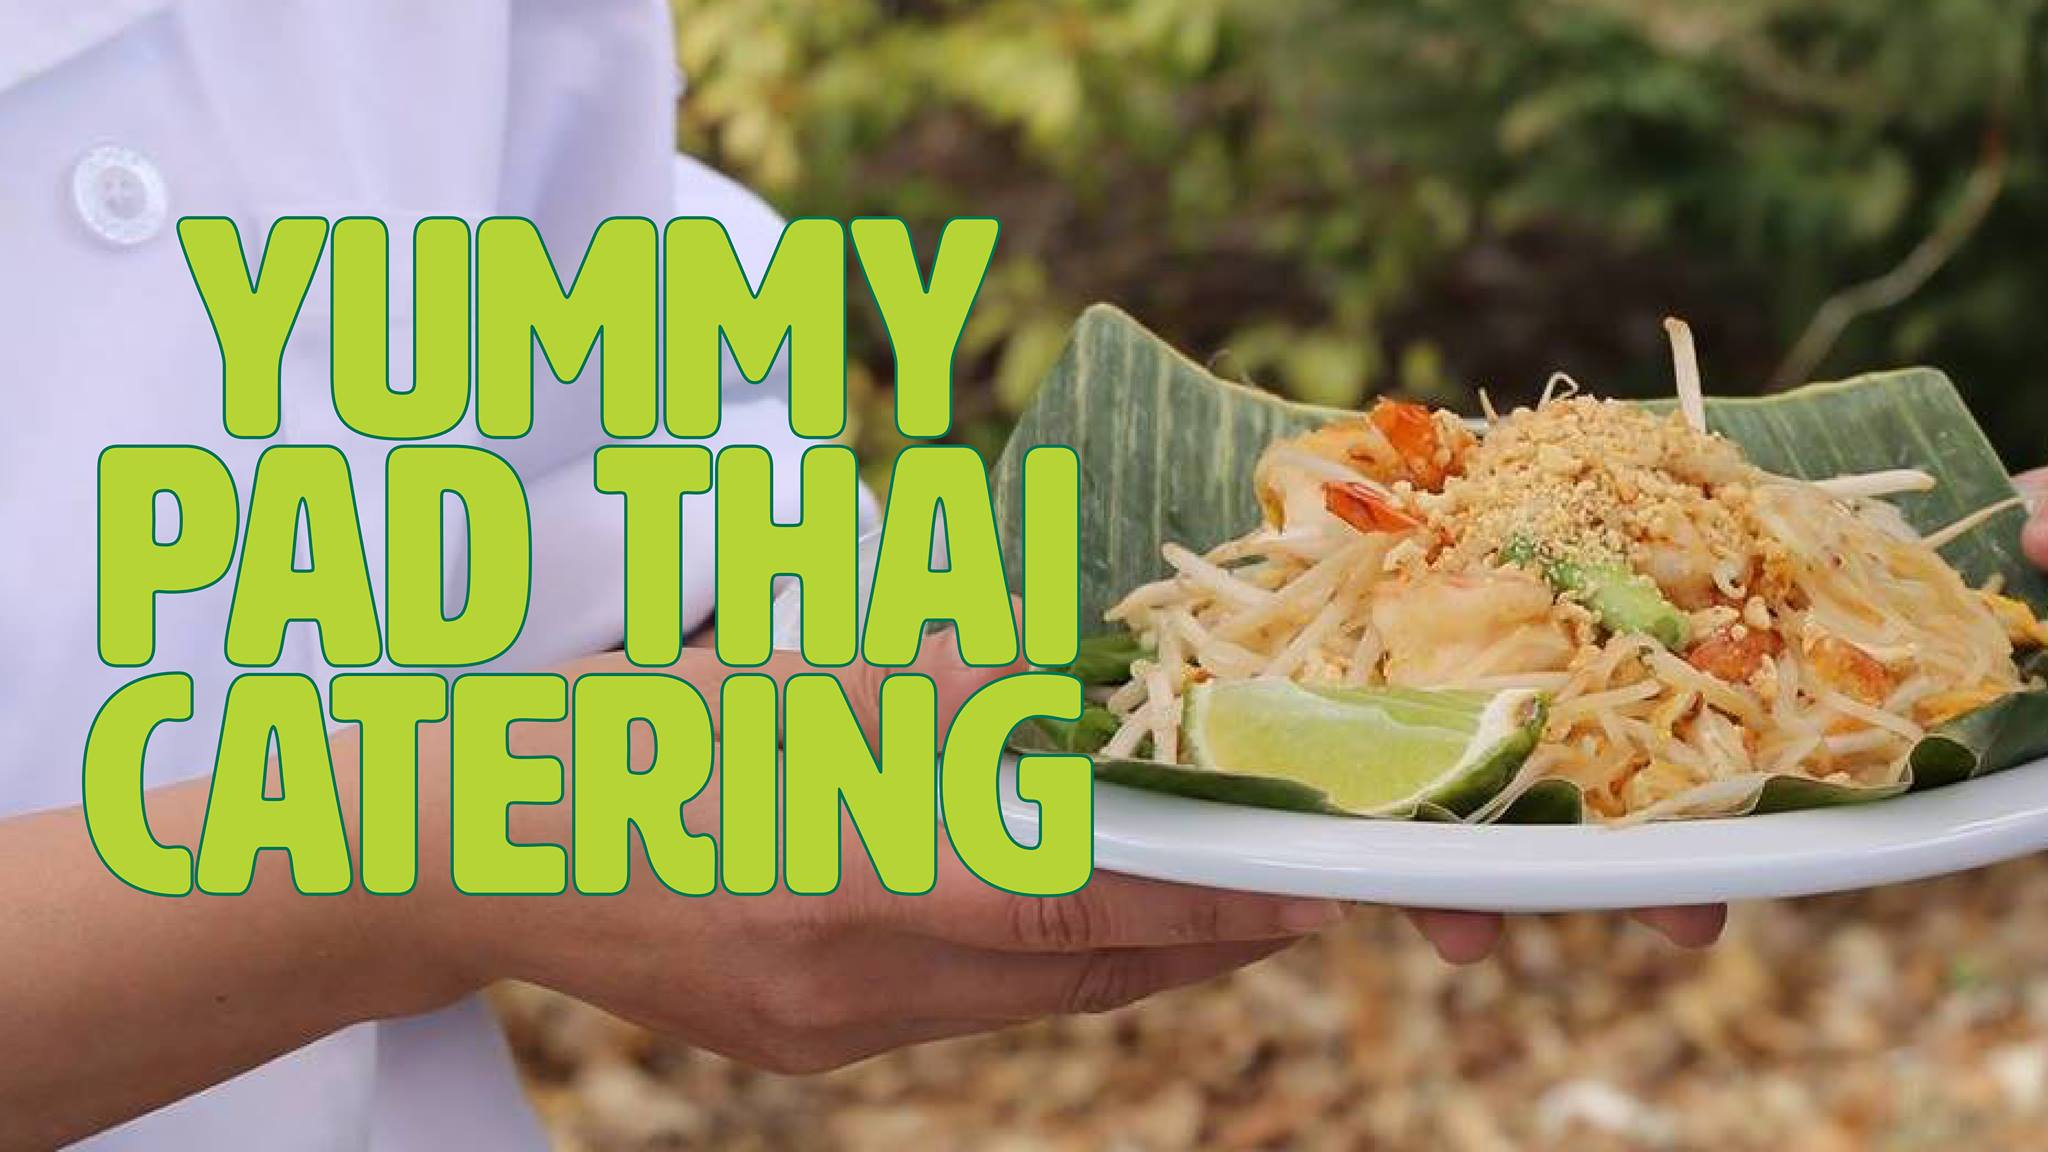 yummy_pad_thai.jpg